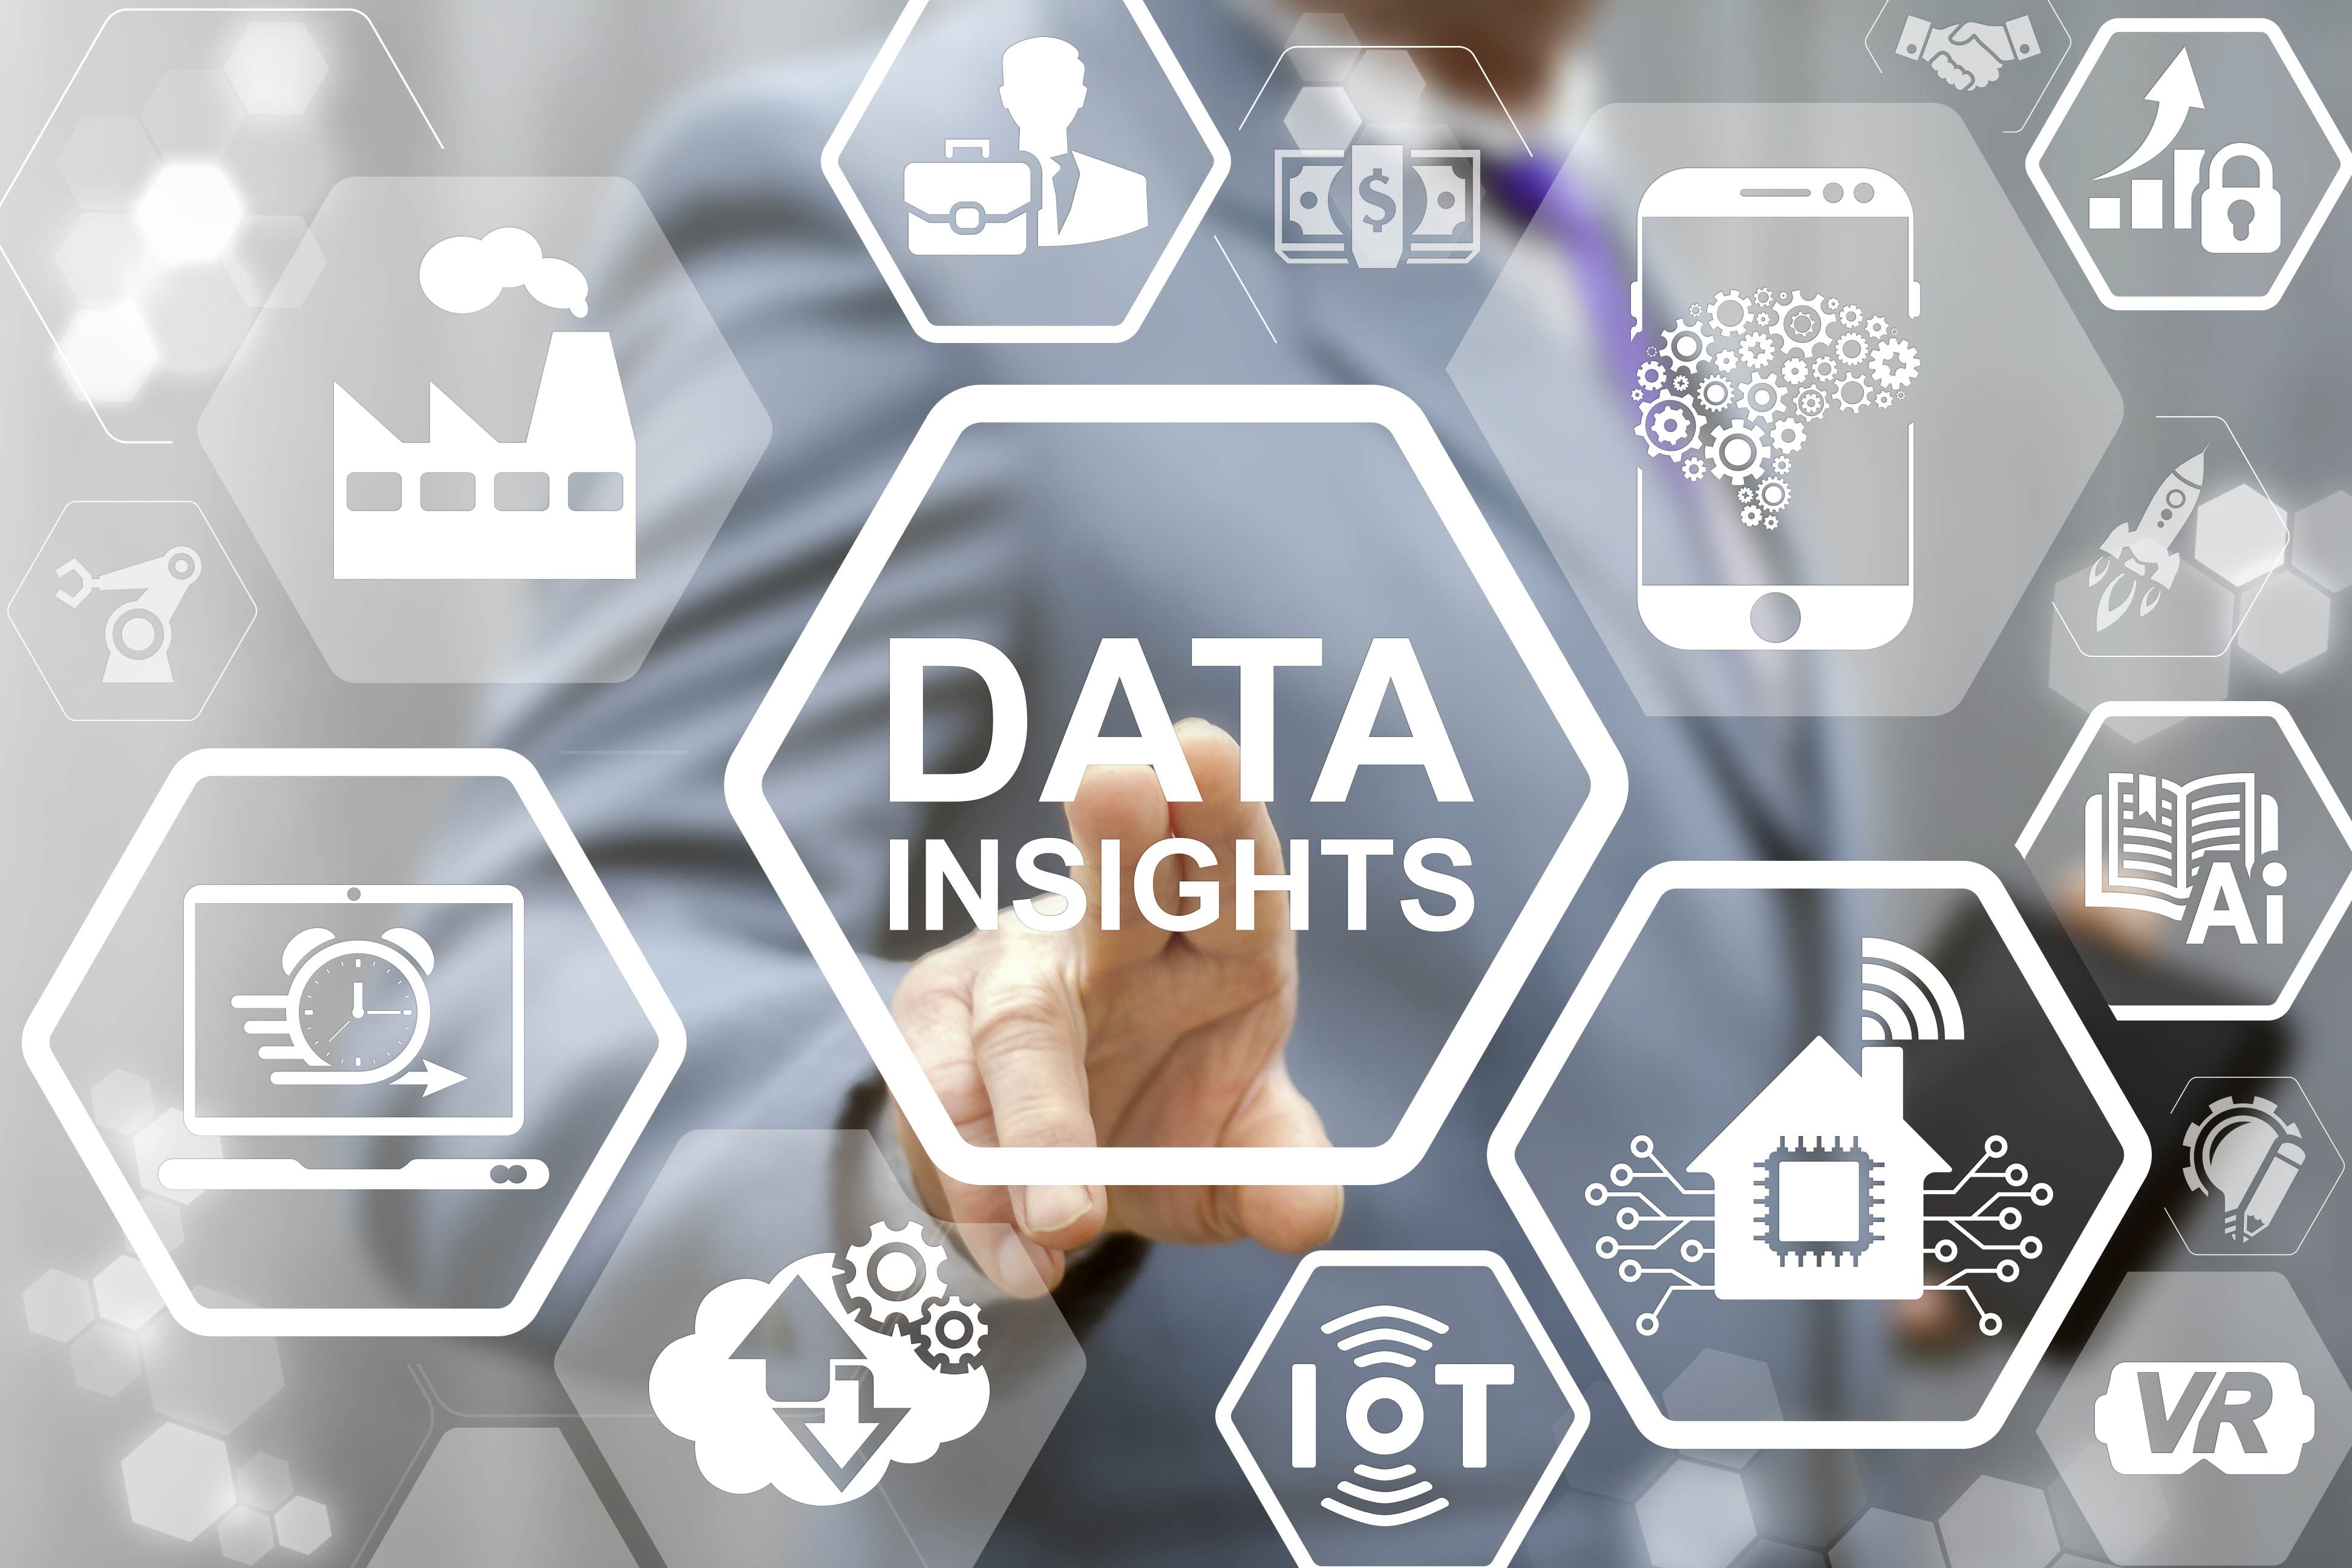 Data Insight Analysis business industry